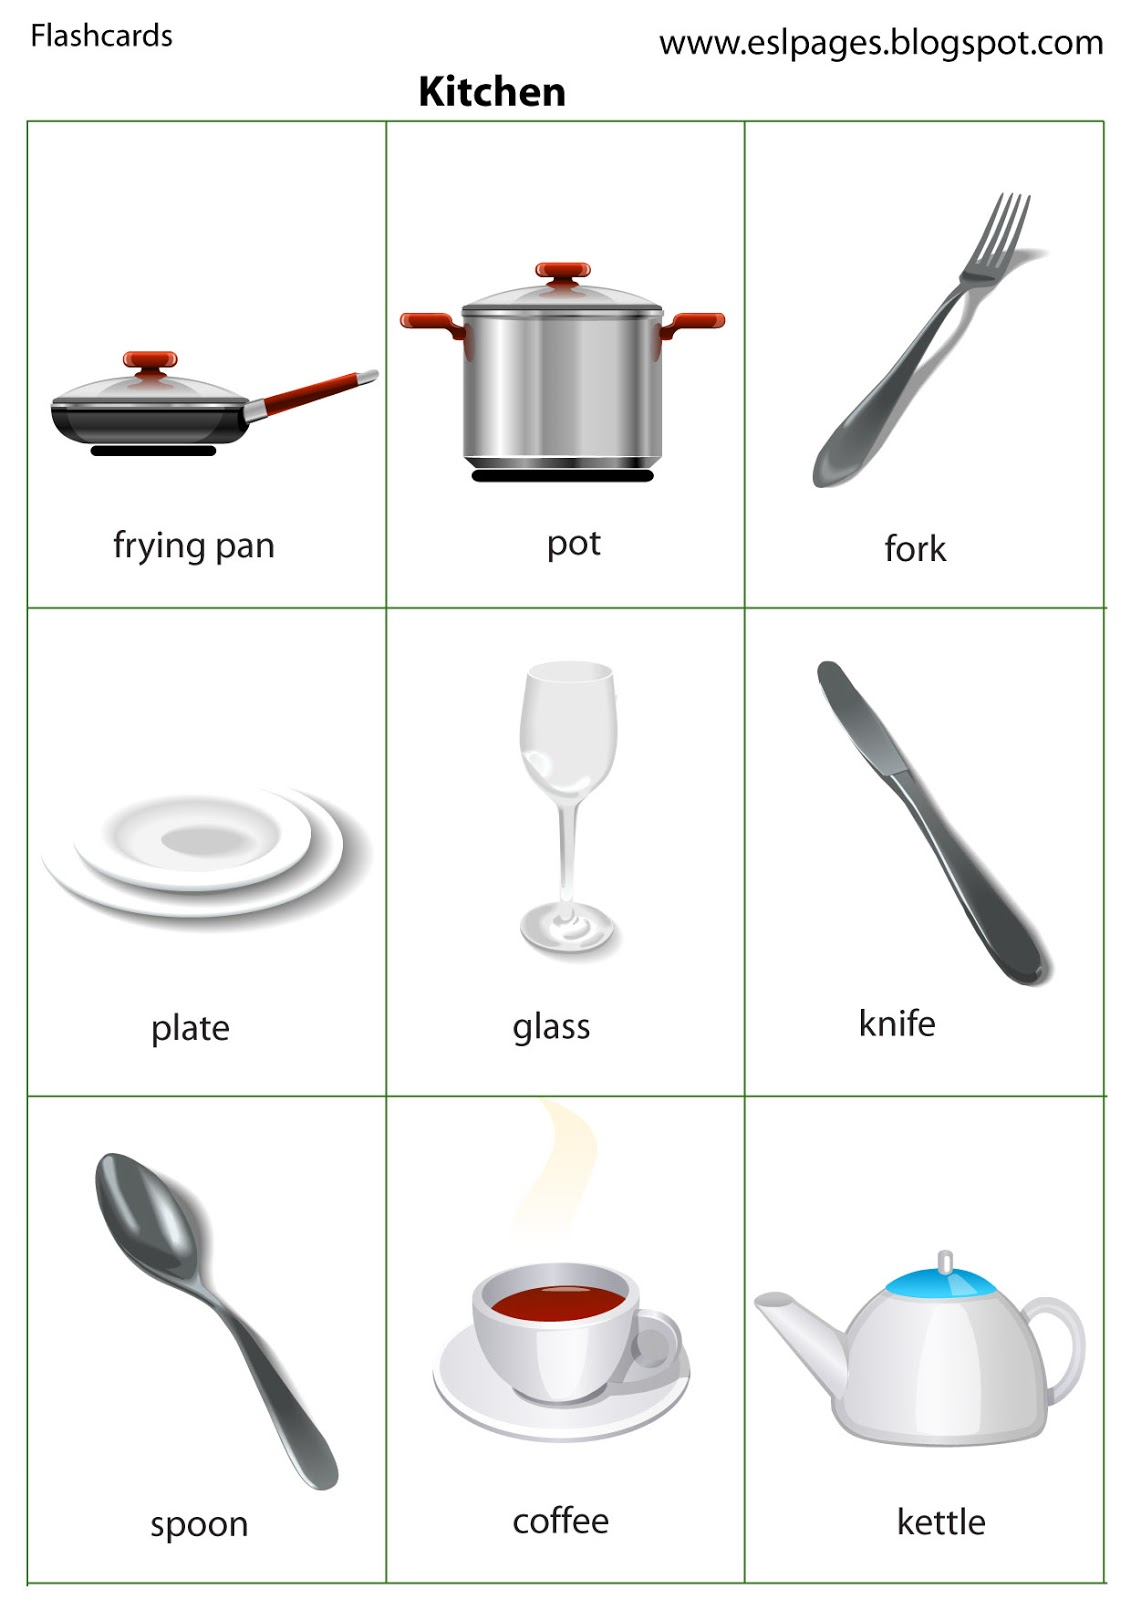 Kitchen Flashcards Images